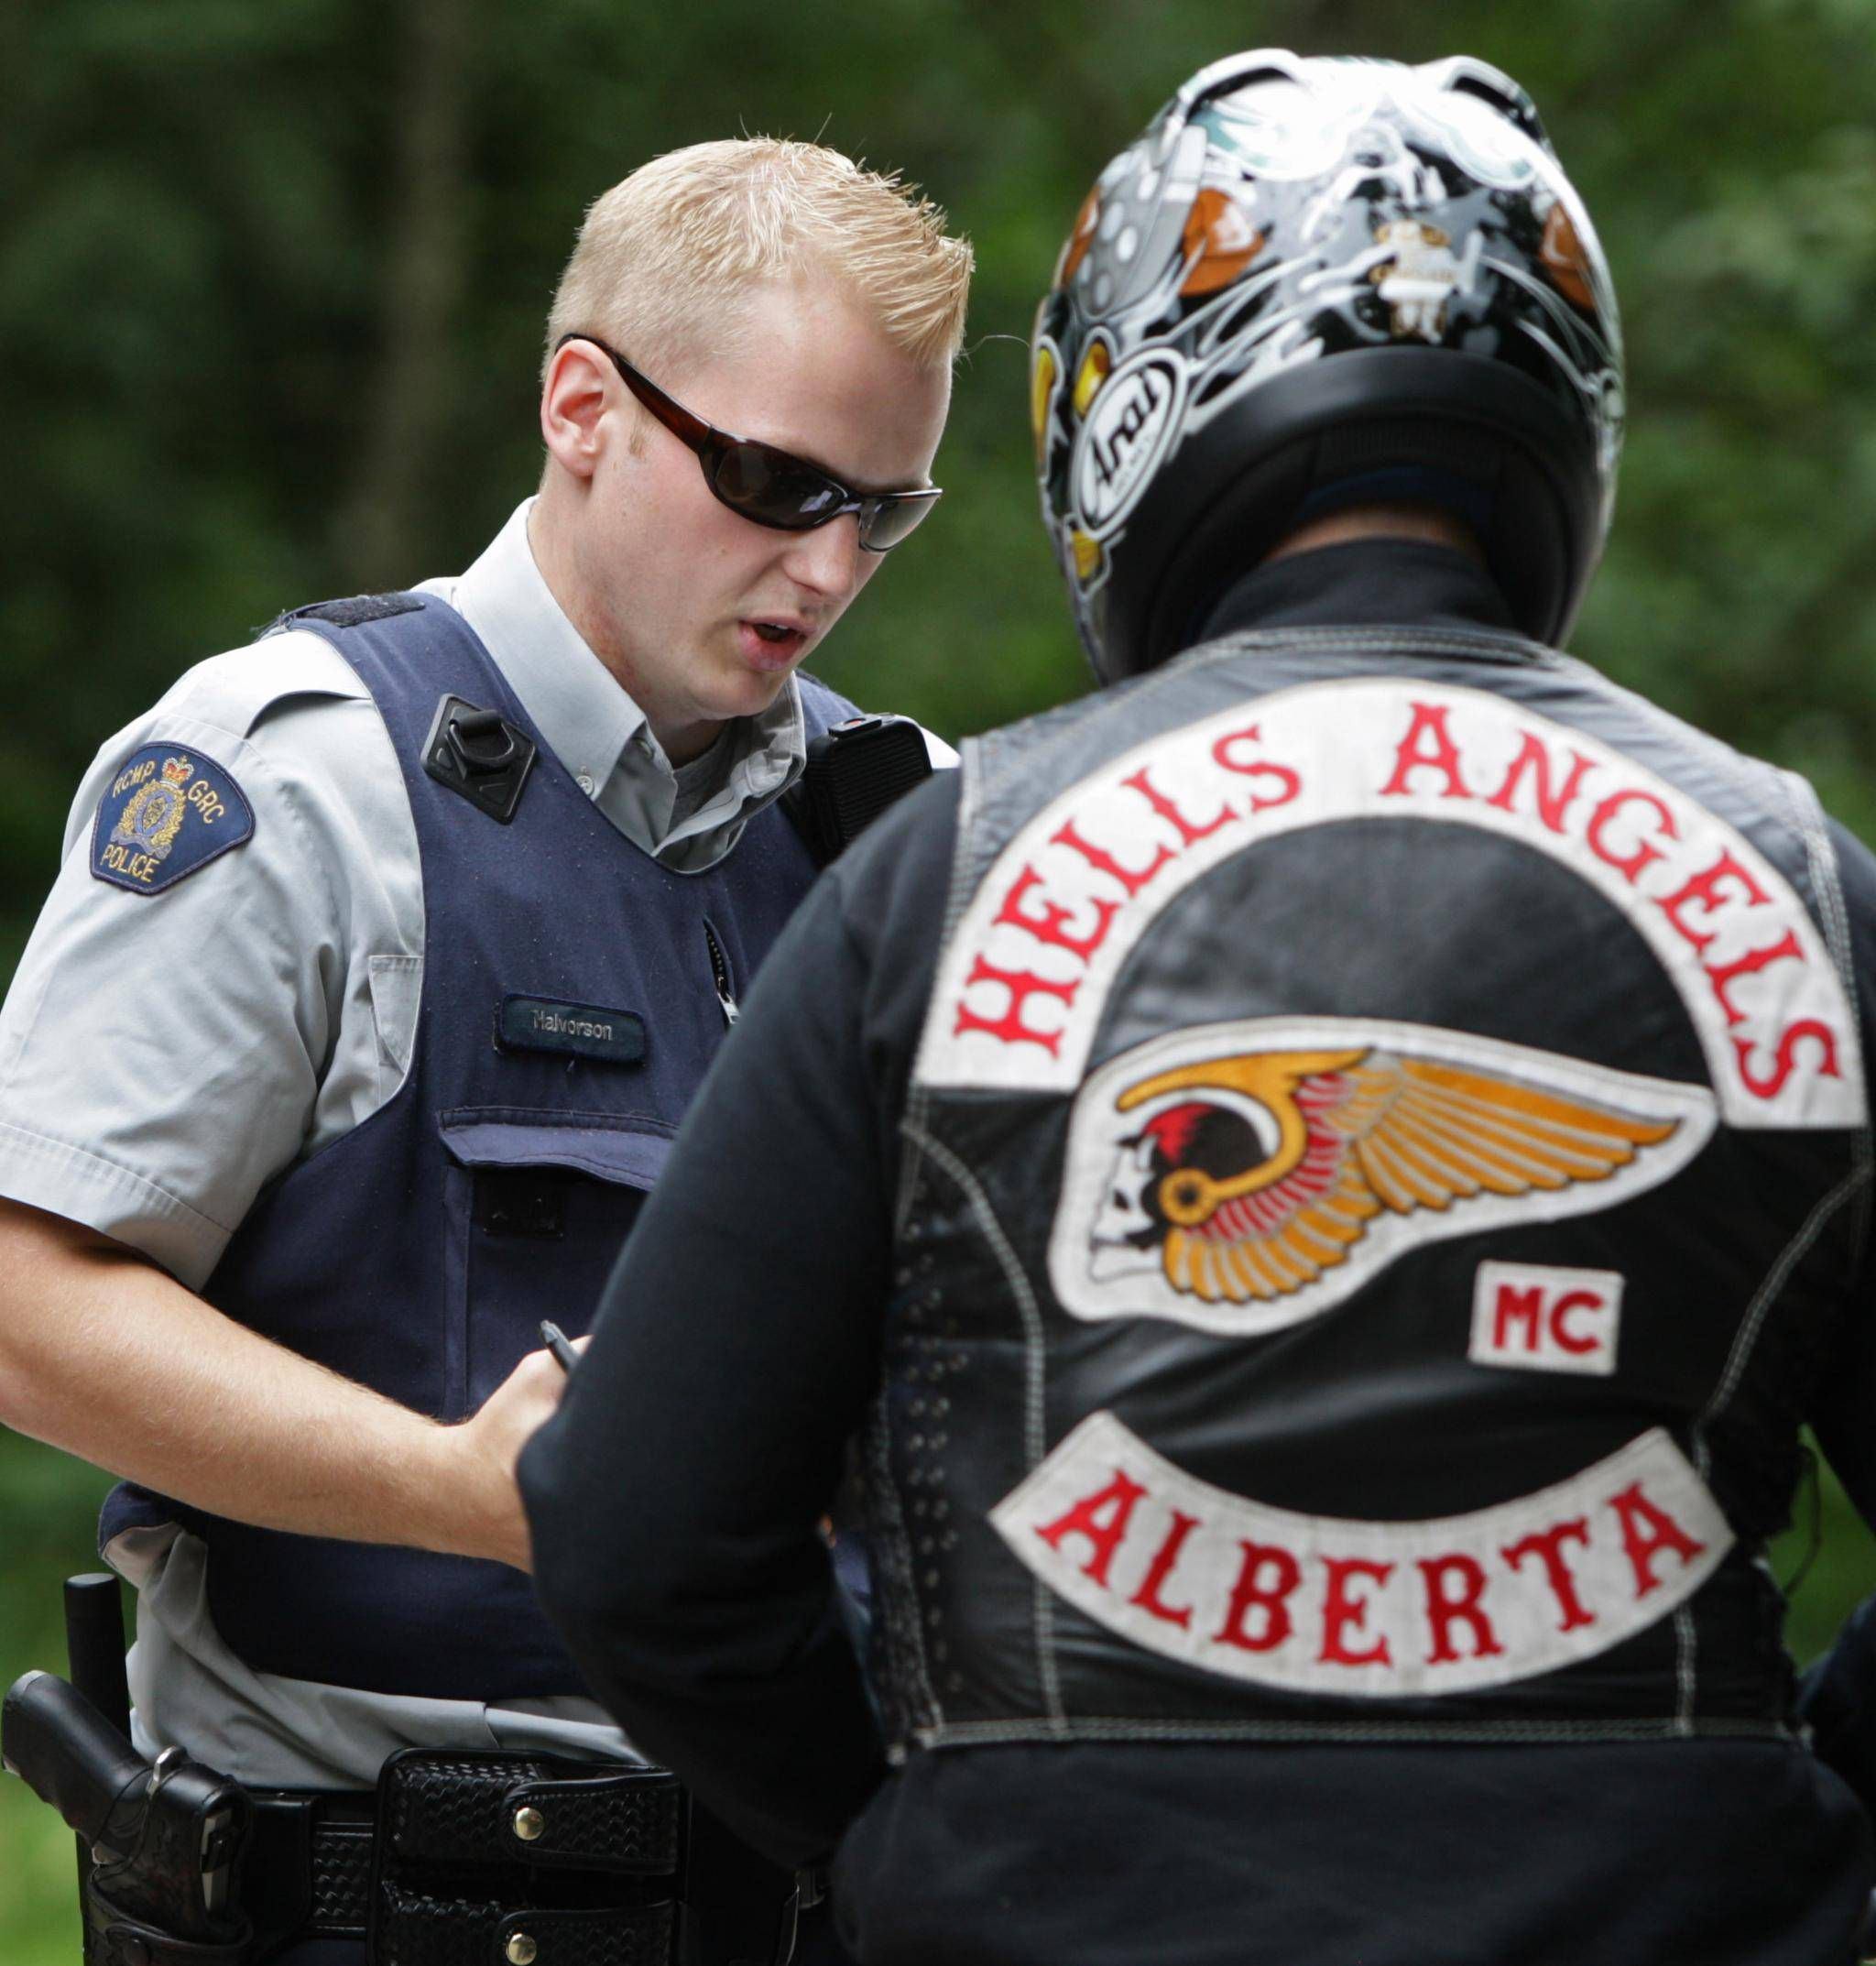 hell angels and police